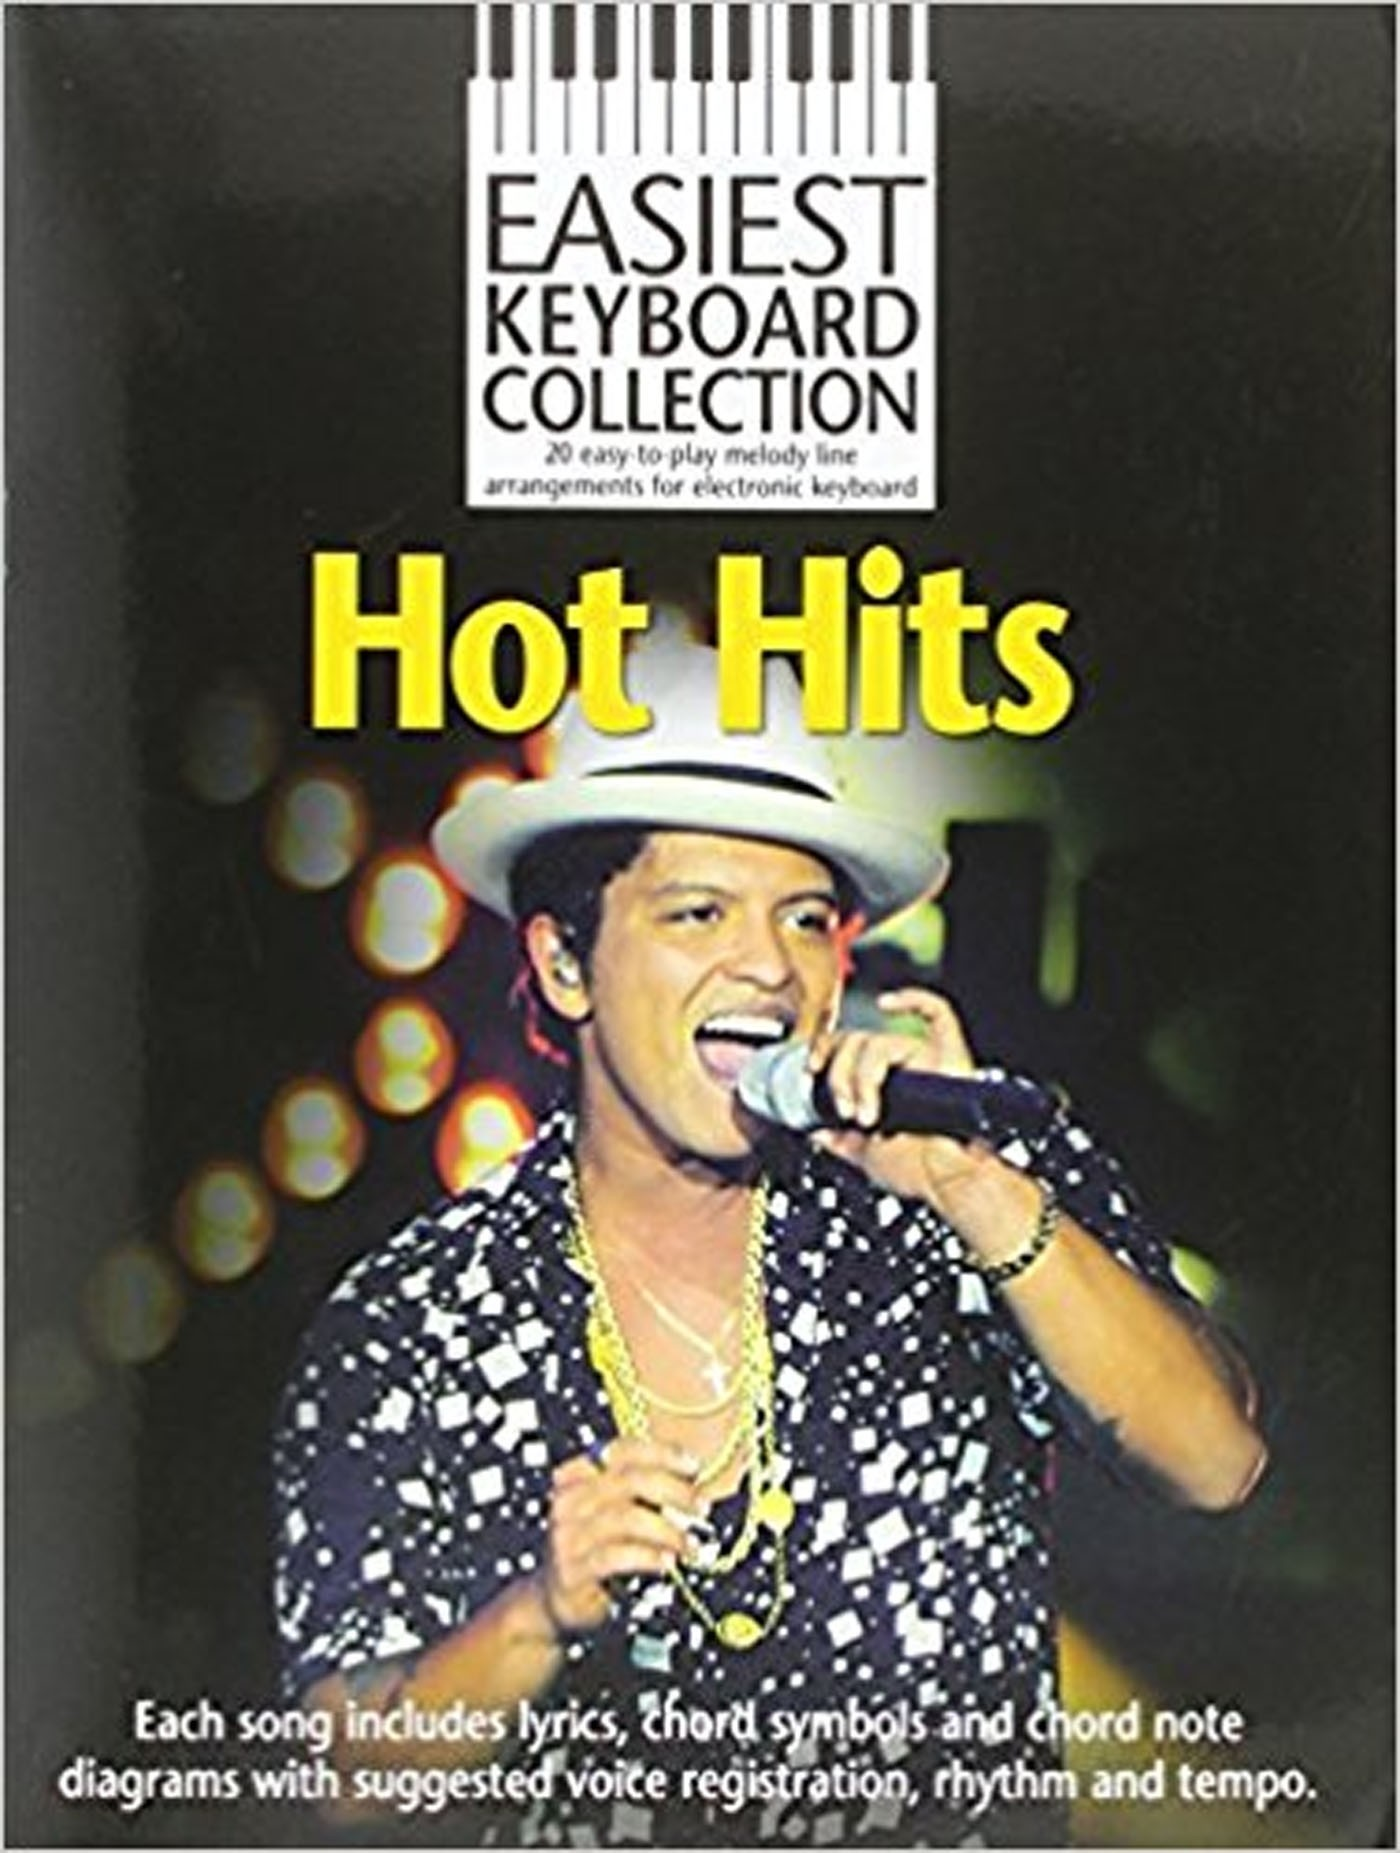 Easiest Keyboard Collection Hot Hits Book Easy Tunes Chords Lyrics Songs S146